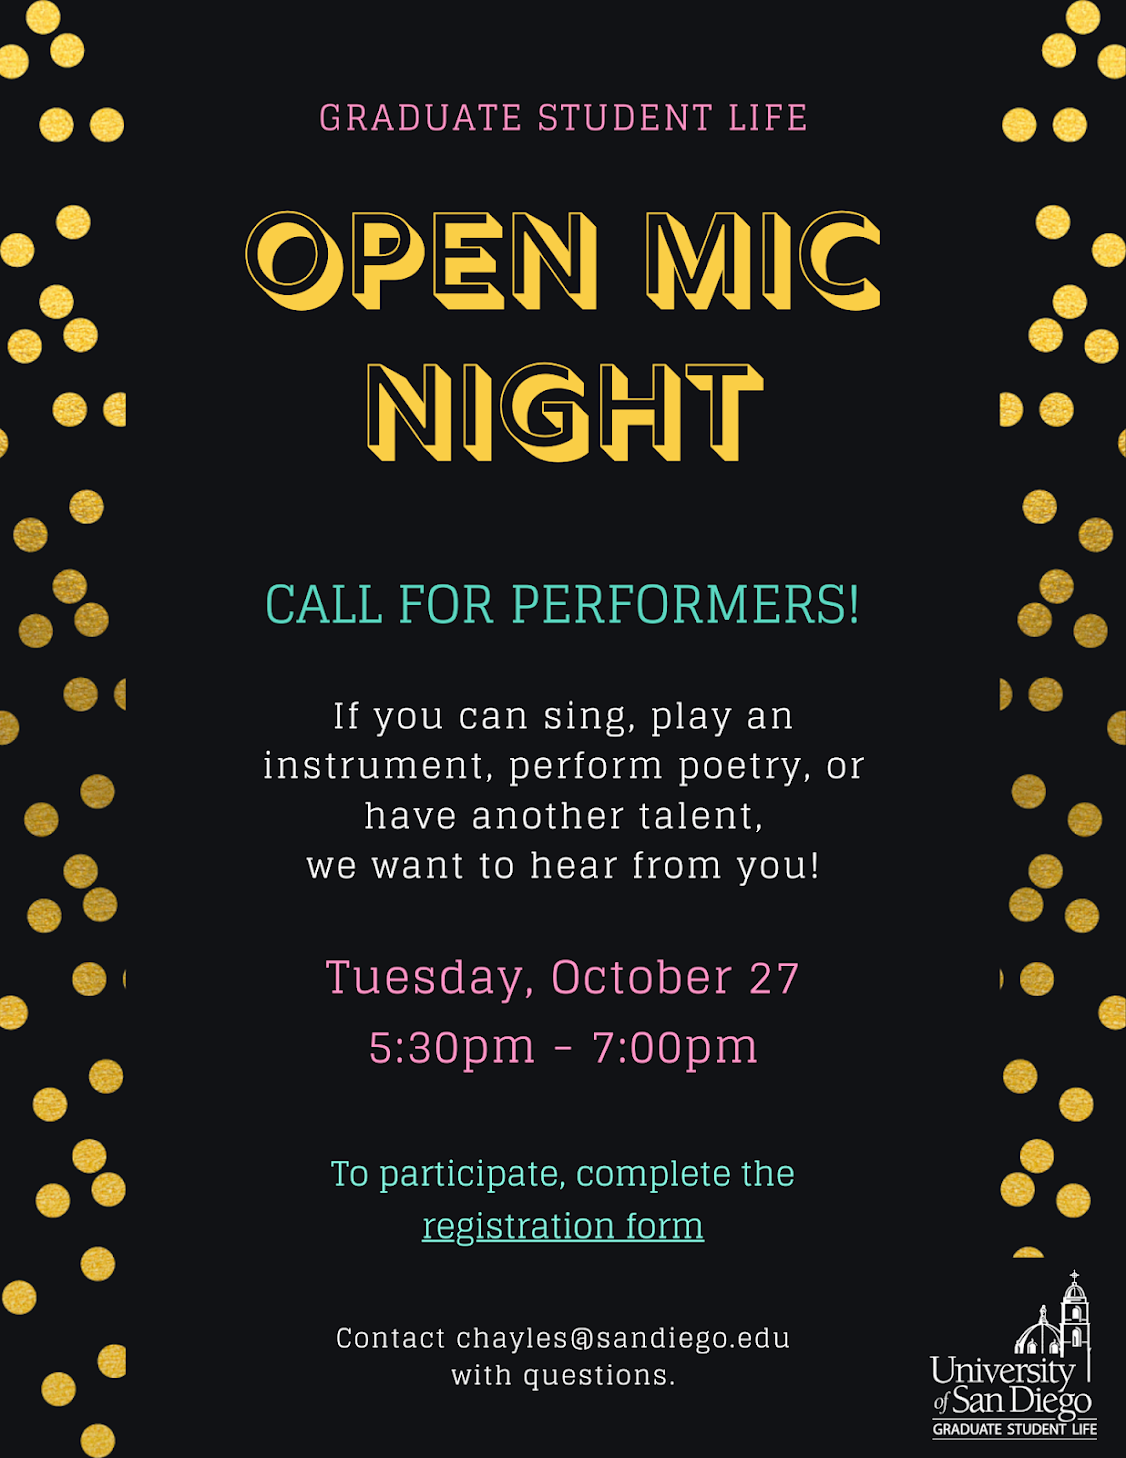 GSL Open Mic Night: Call for performers. If you have a talent, we want you to join us on Tuesday, October 27 at 5:30-7:00pm. Register to perform.